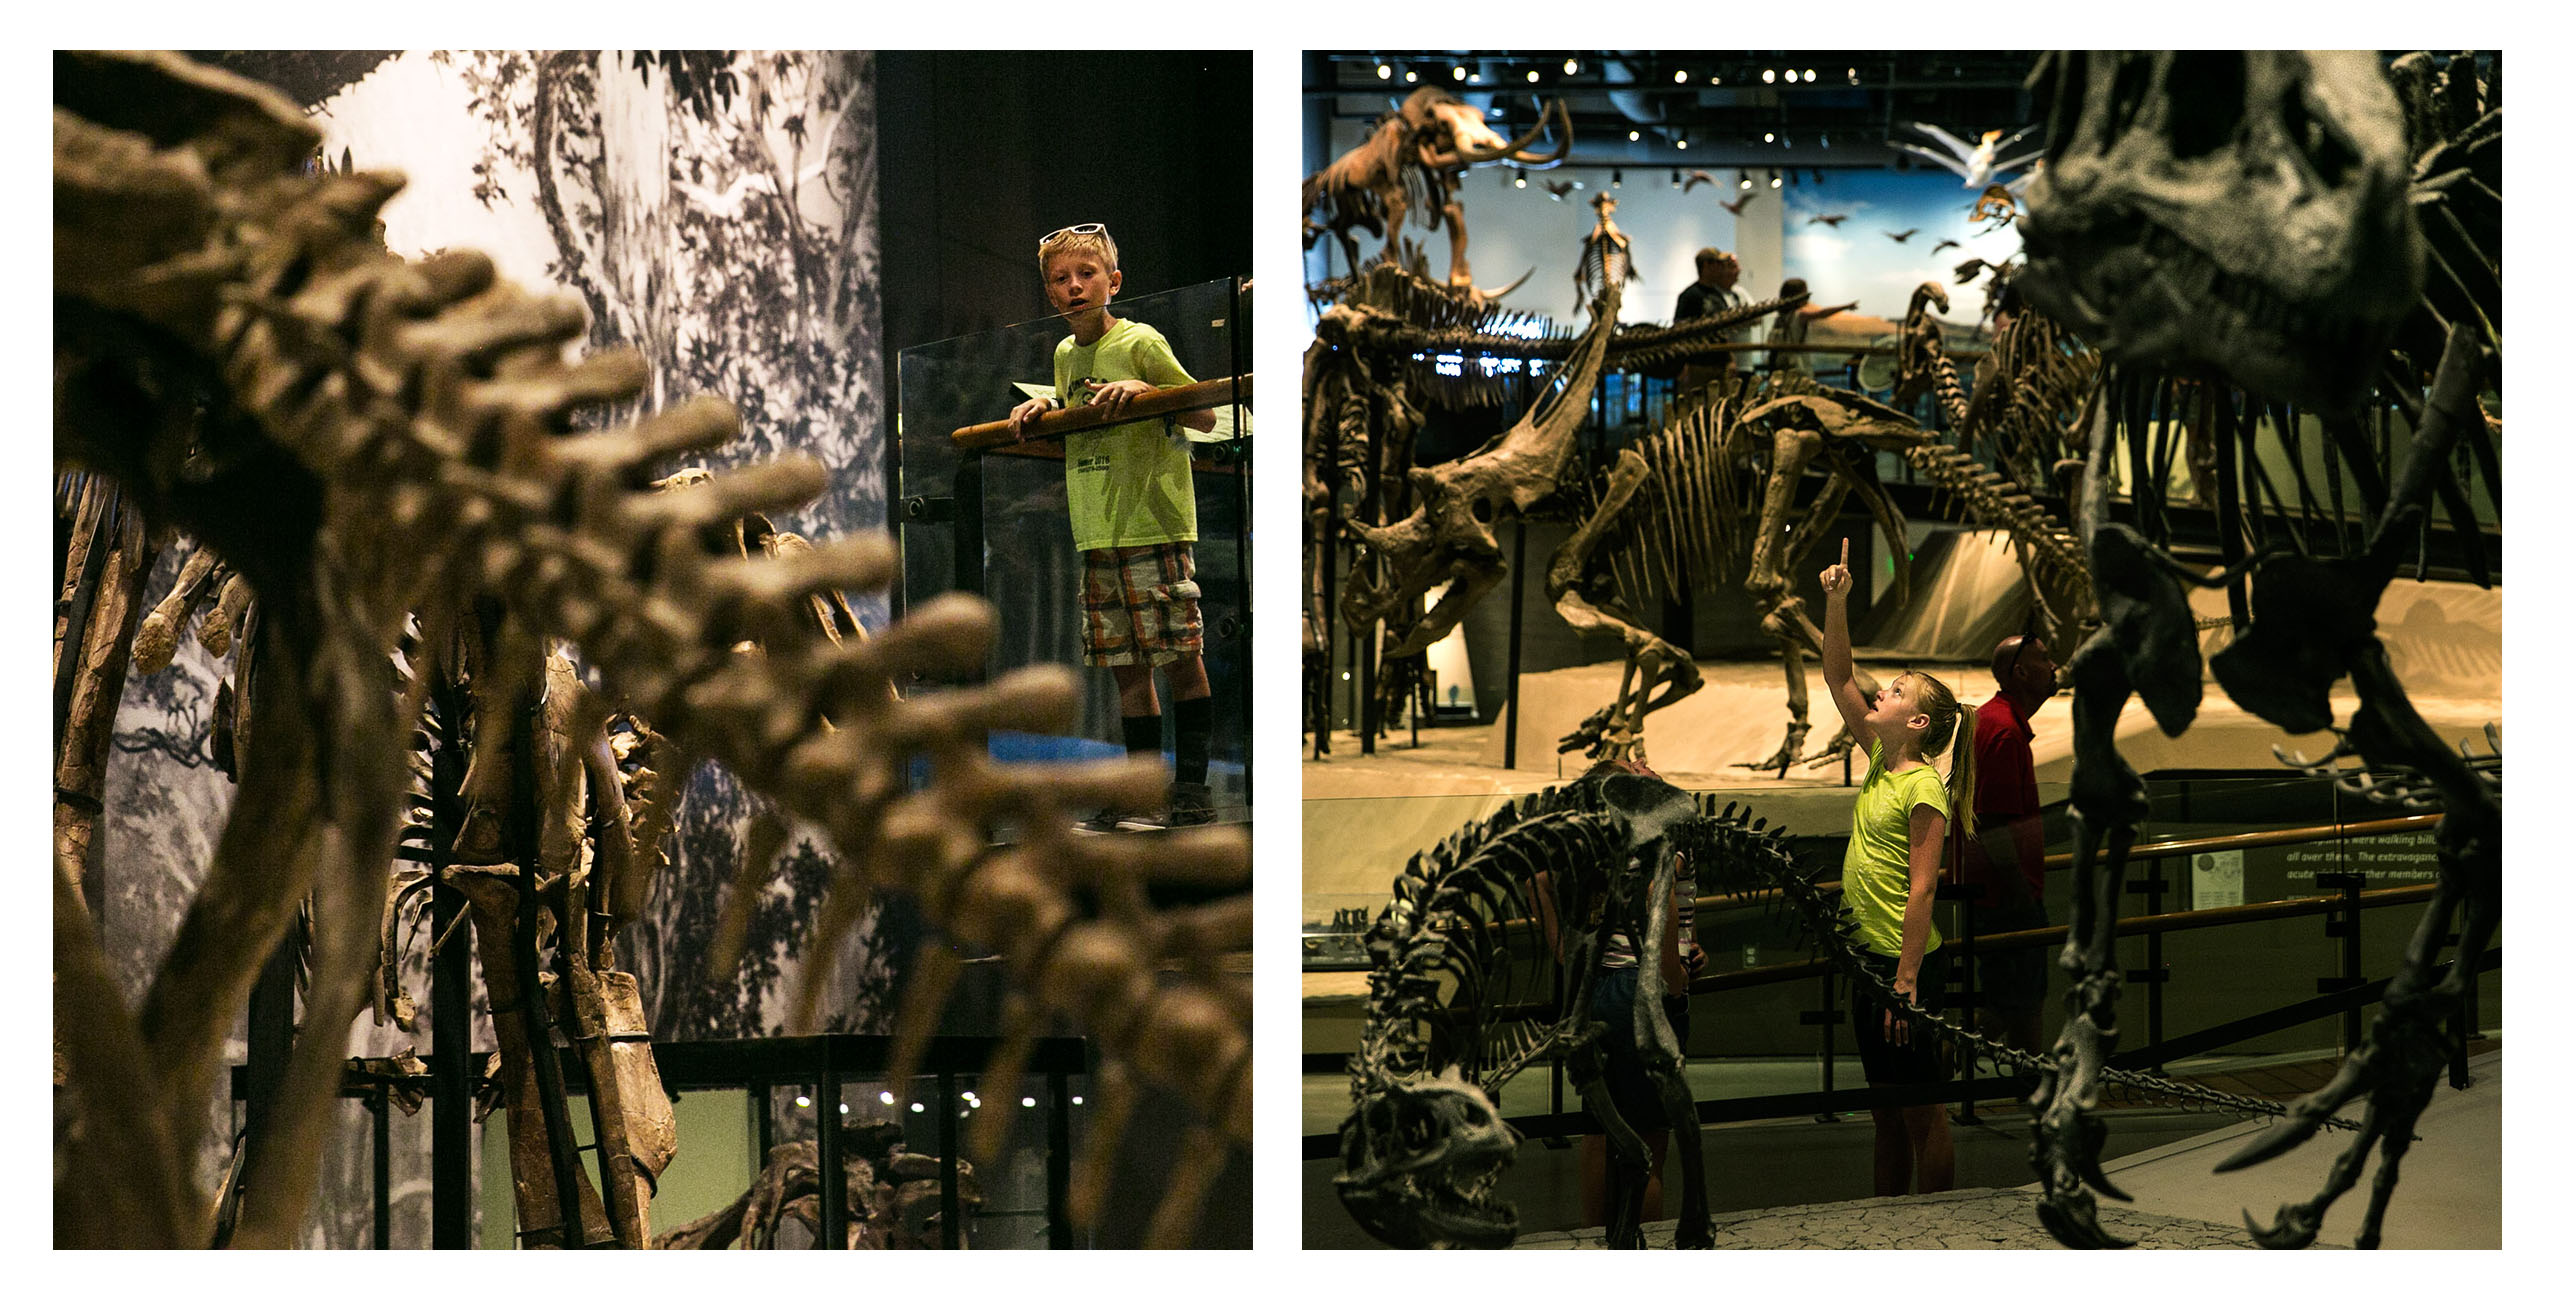 The Natural History Museum of Utah is as much a museum of fine art as it is one of science and discovery.